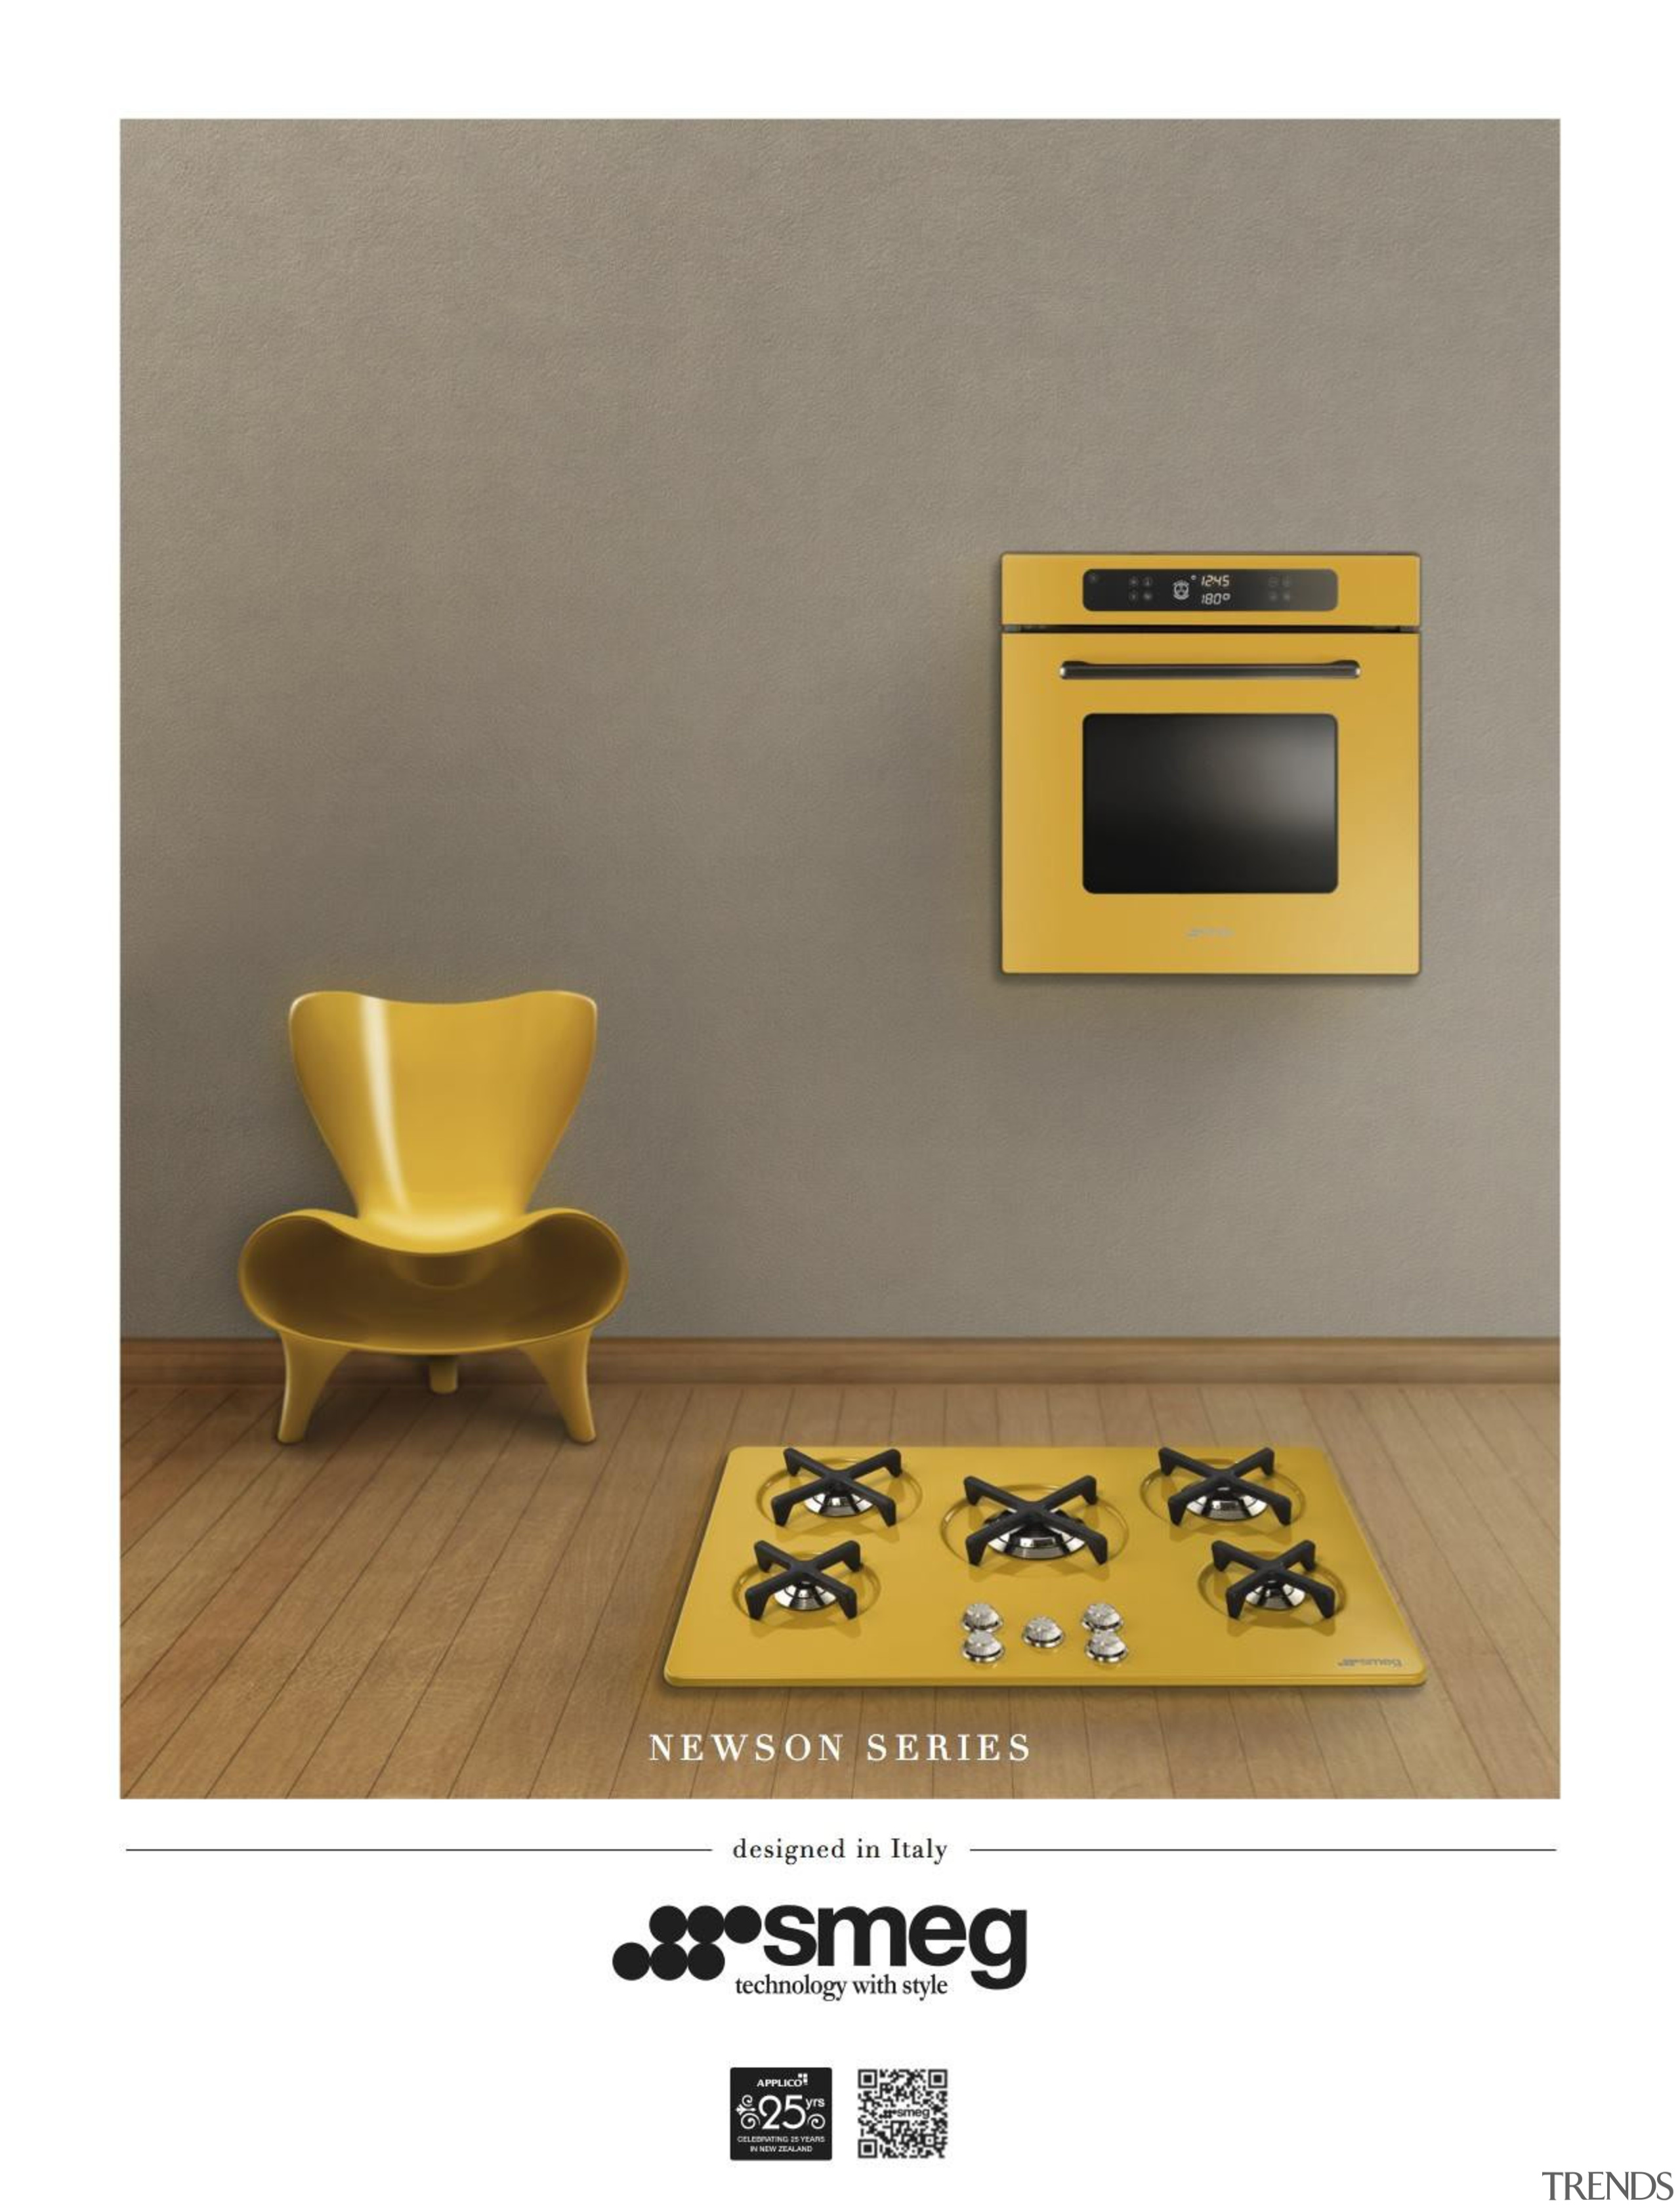 T2 Agency conceptualised a brand advertising series aimed font, table, text, yellow, gray, white